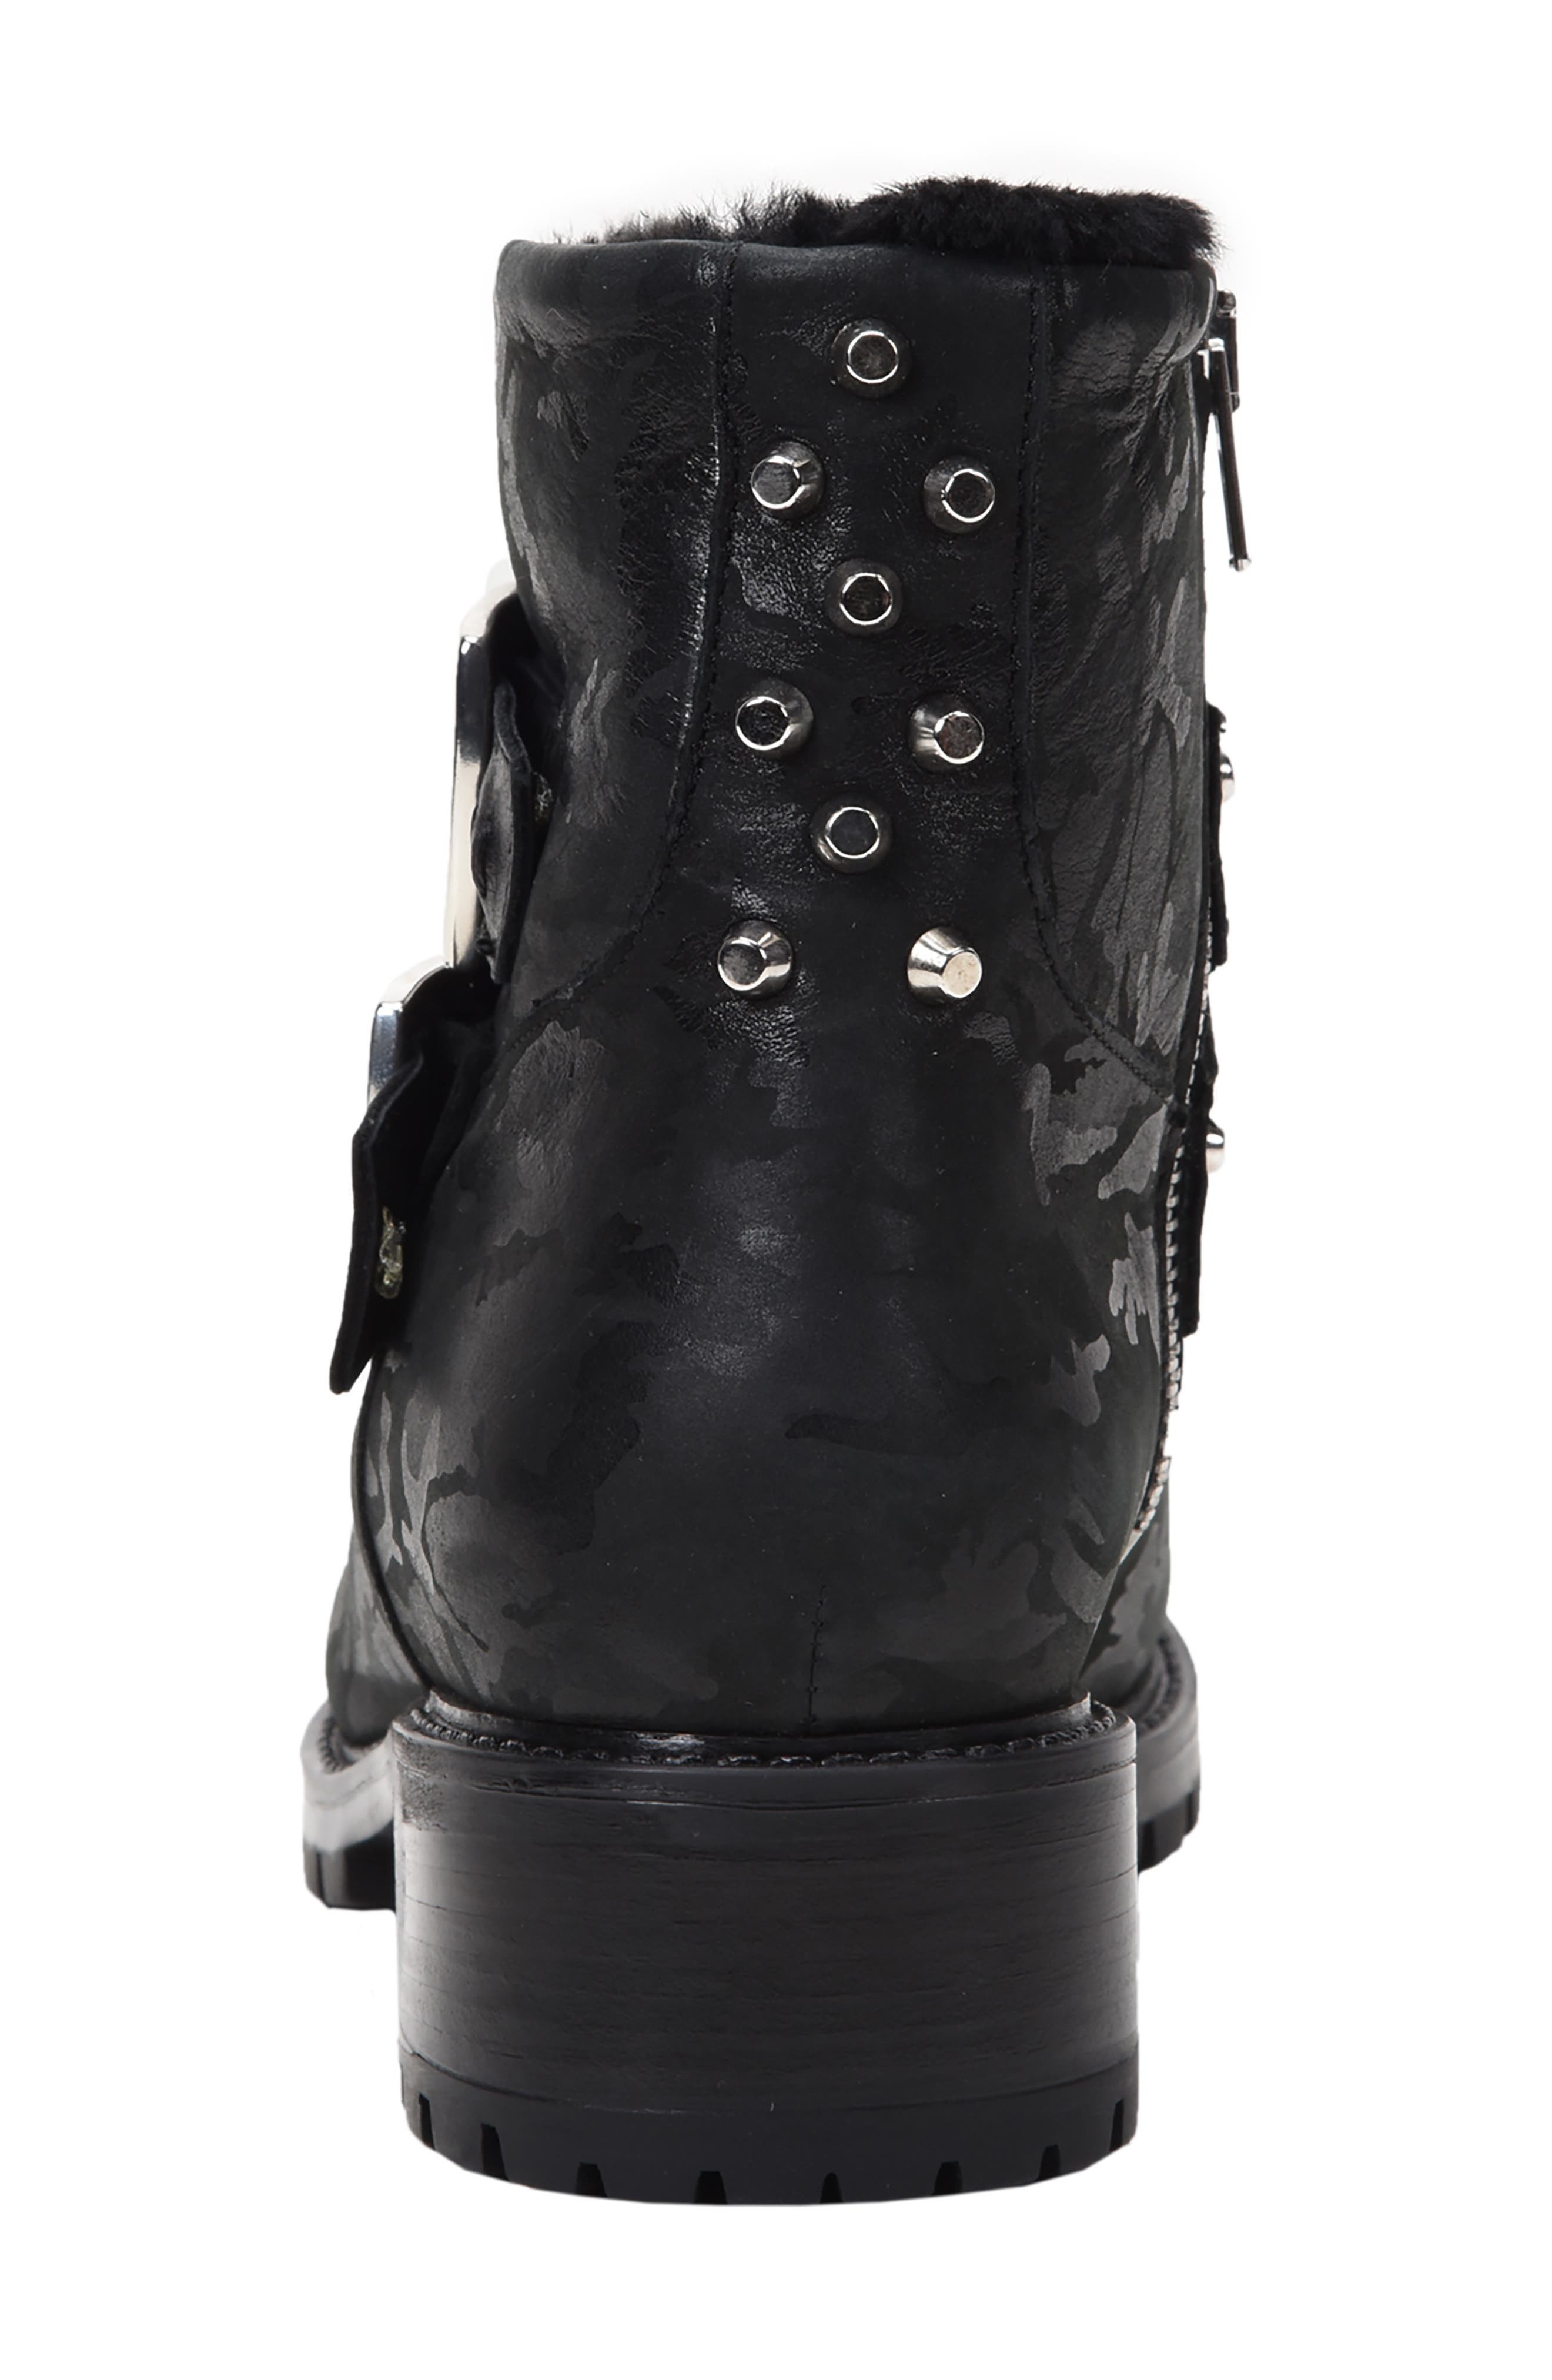 Stefana SP Genuine Shearling Lined Waterproof Bootie,                             Alternate thumbnail 6, color,                             BLACK CAMO LEATHER